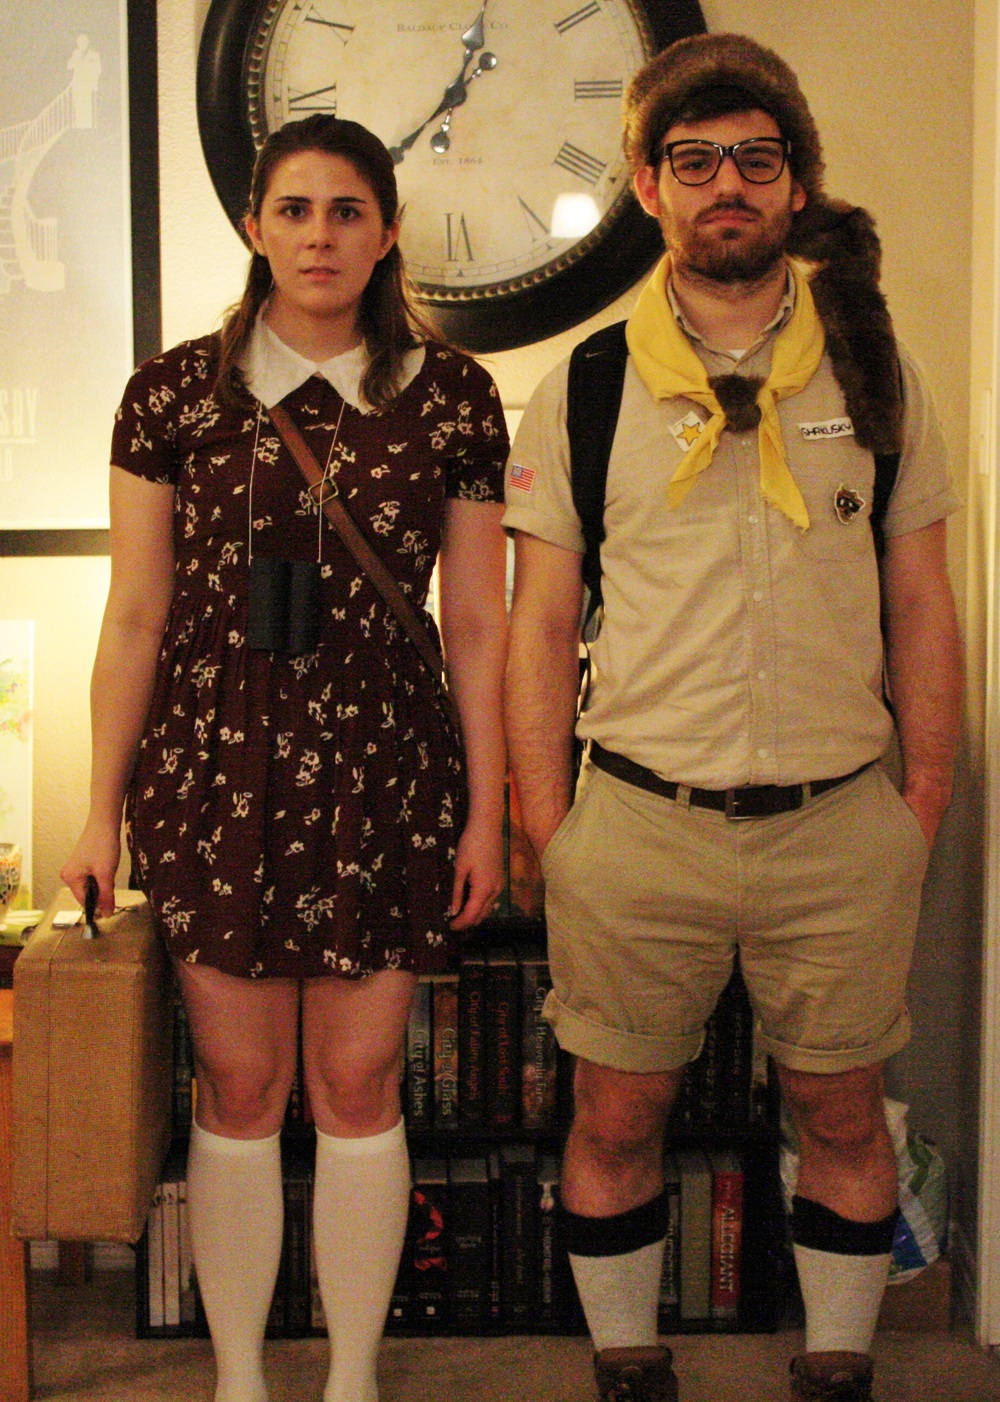 We were Suzy Bishop and Sam Shakusky from Wes Anderson's  Moonrise Kingdom .